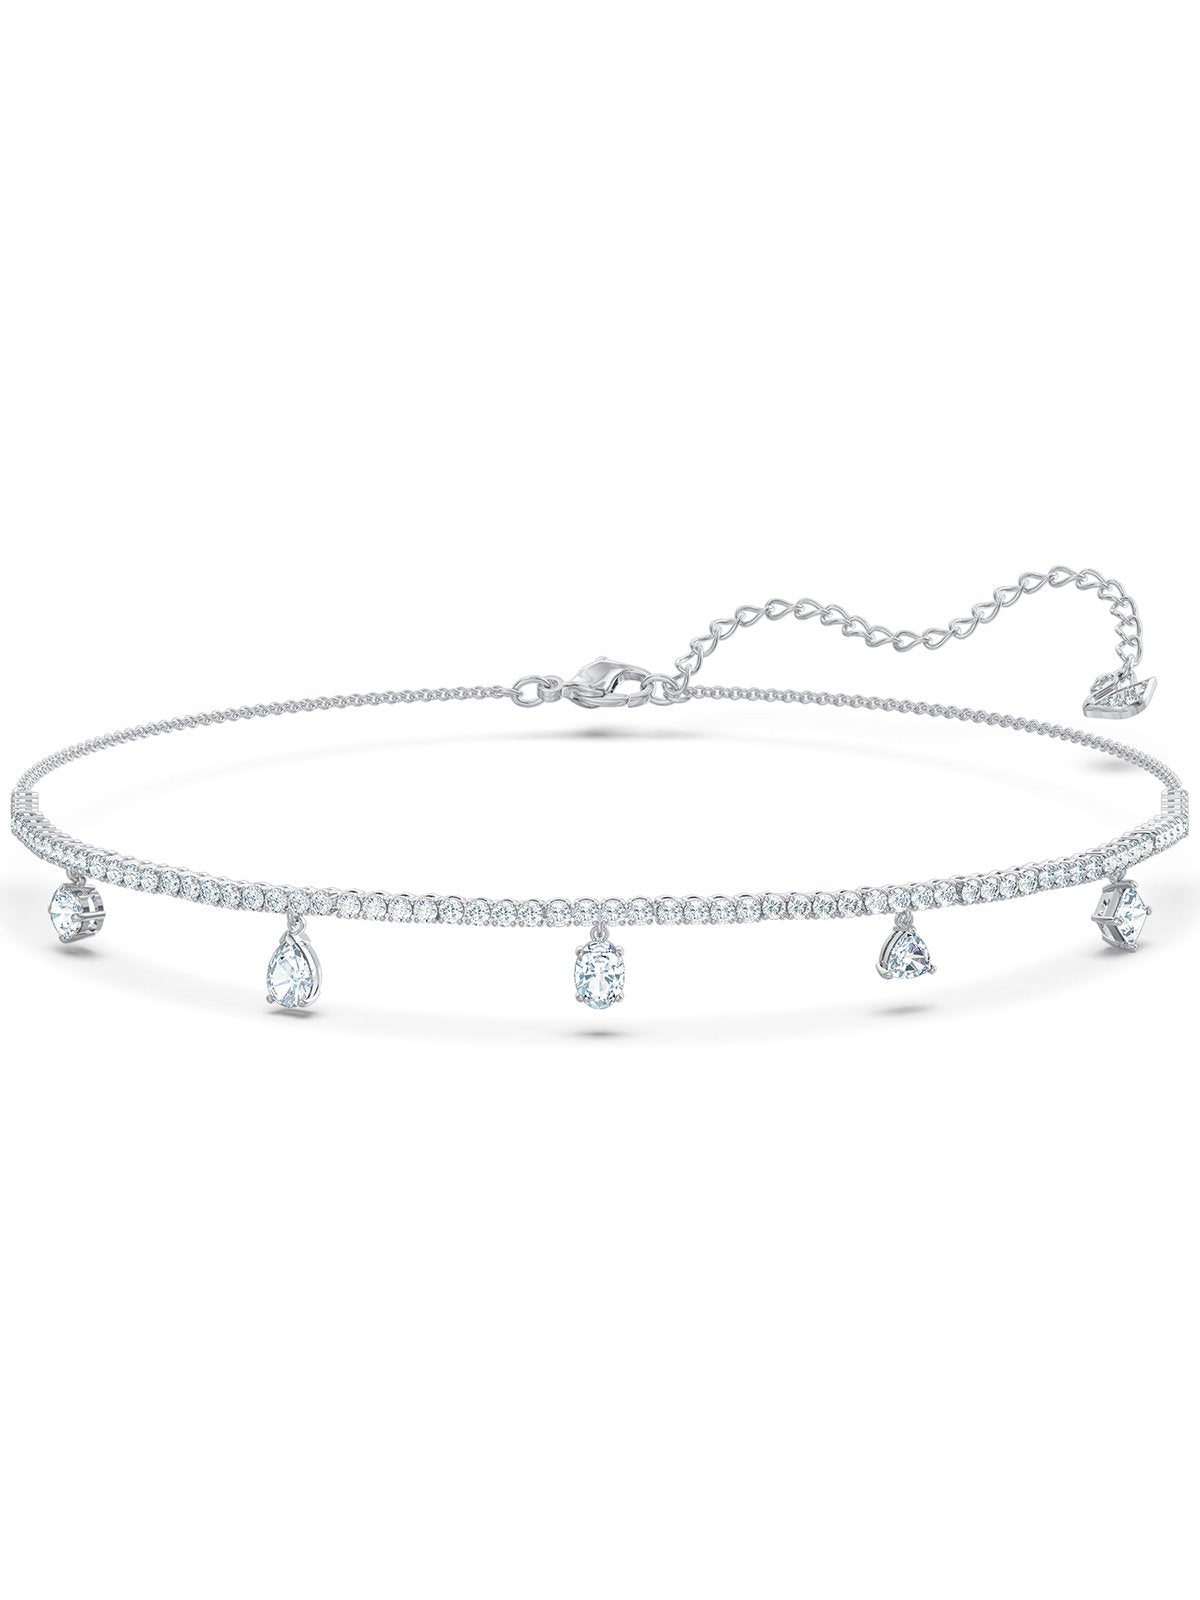 Swarovski Tennis Deluxe Choker Necklace 5562084